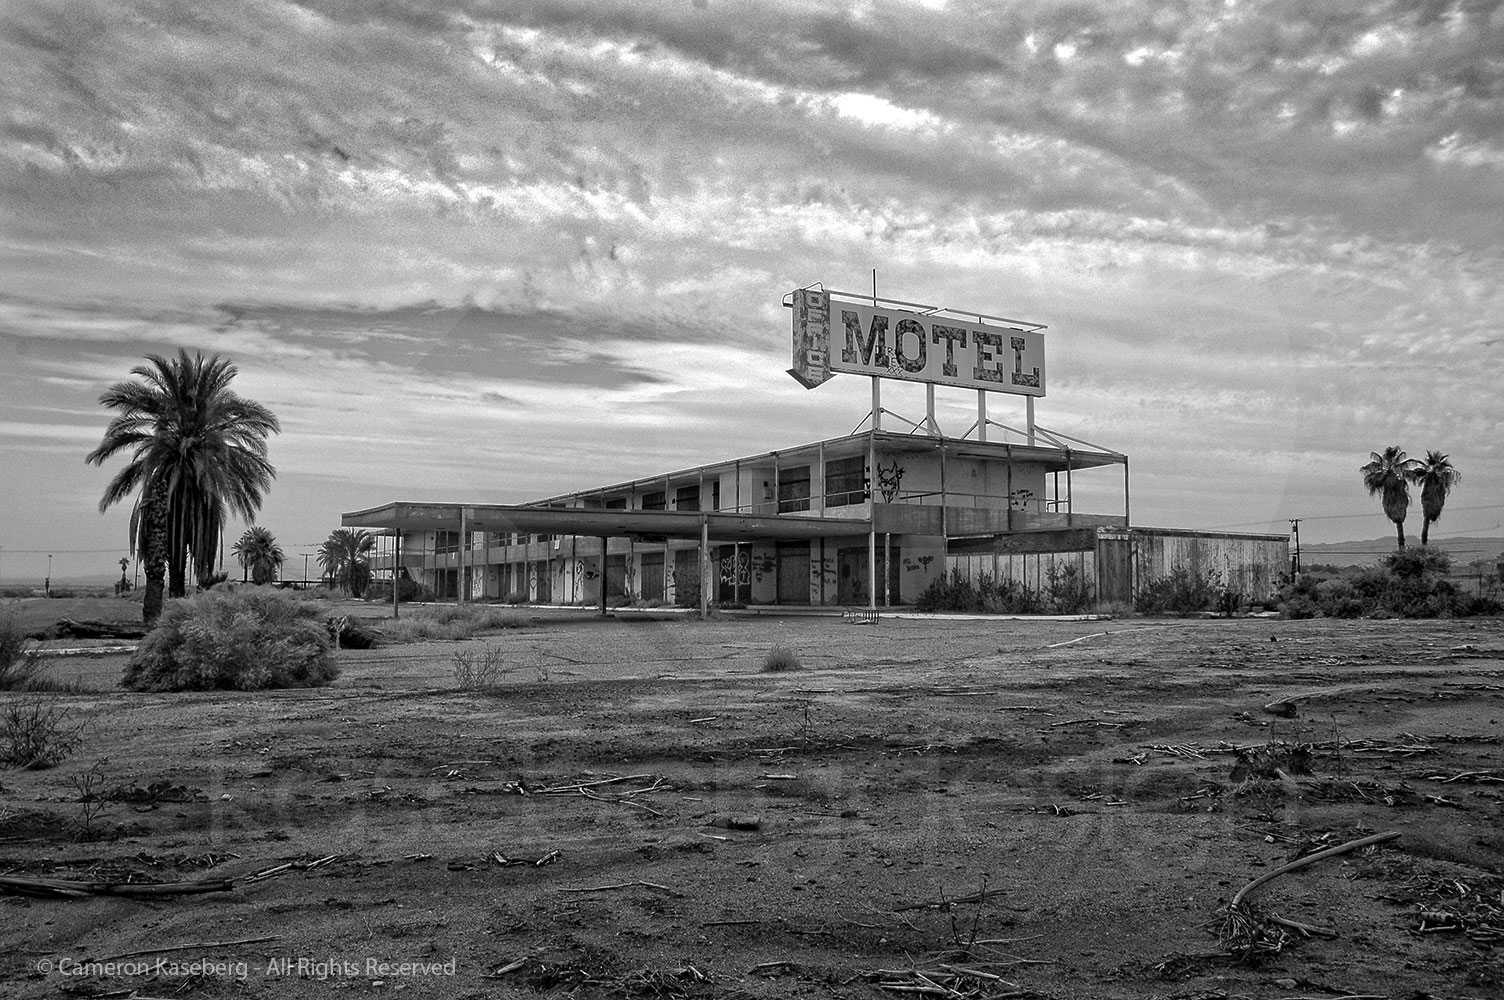 Photo: Salton Dreams by Cameron Kaseberg